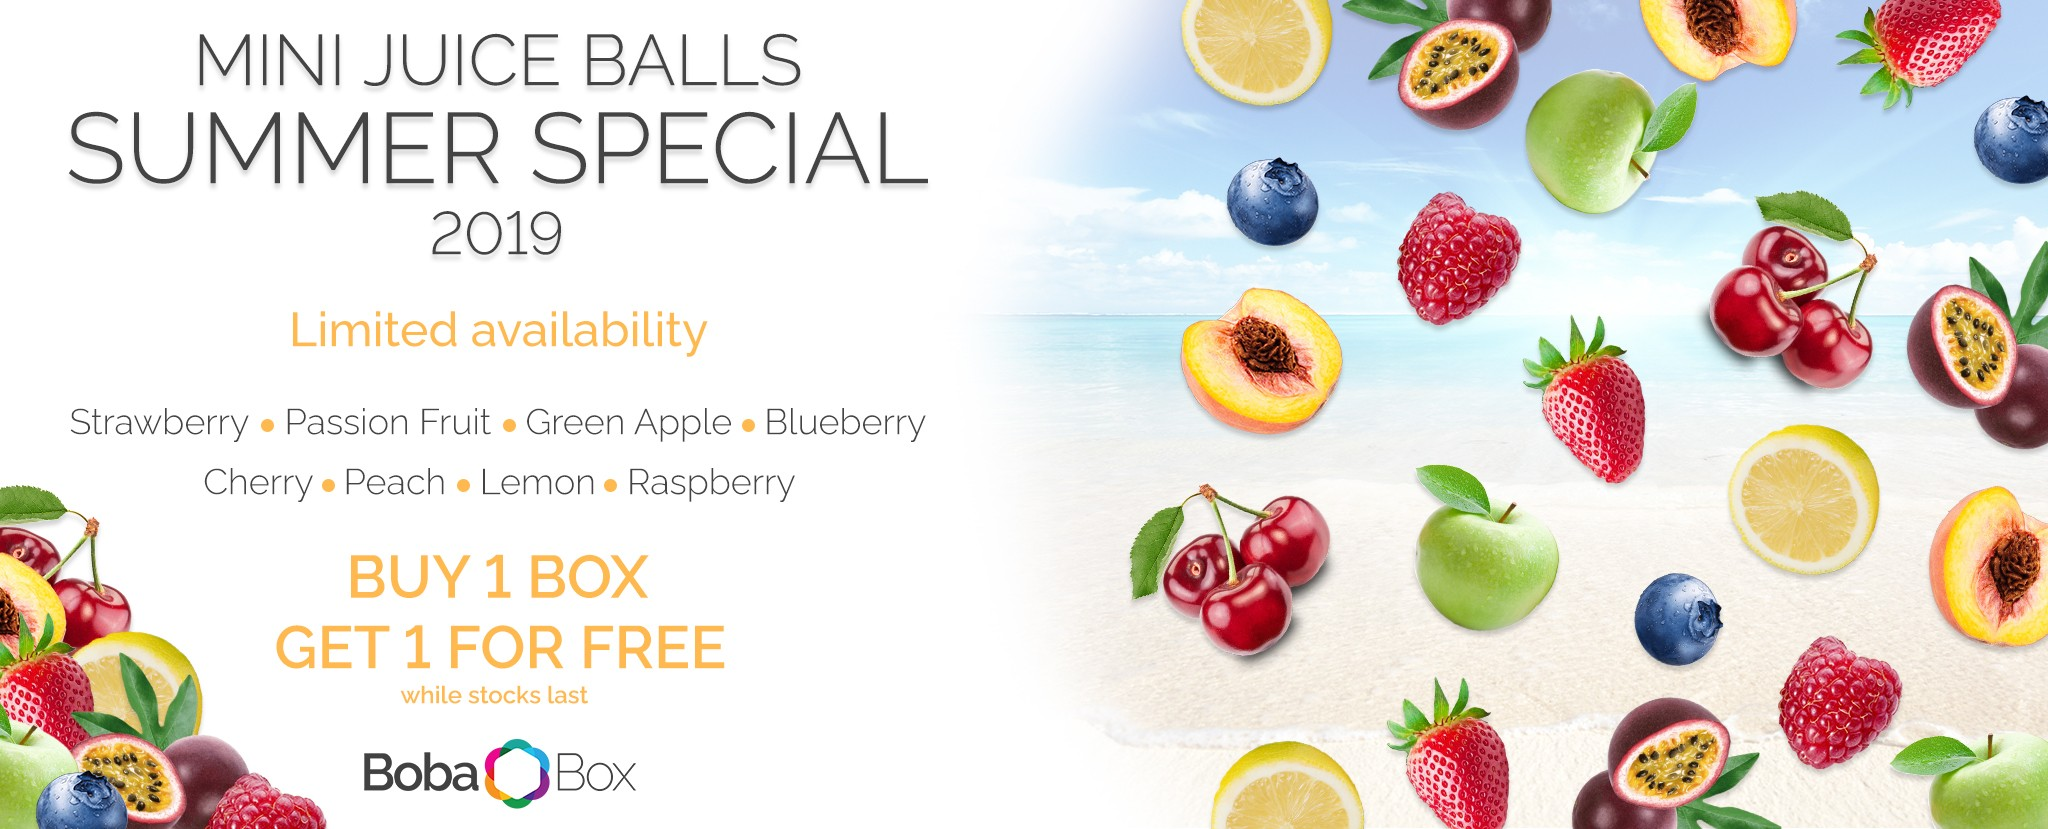 6-8mm mini Juice Balls Summer promotion